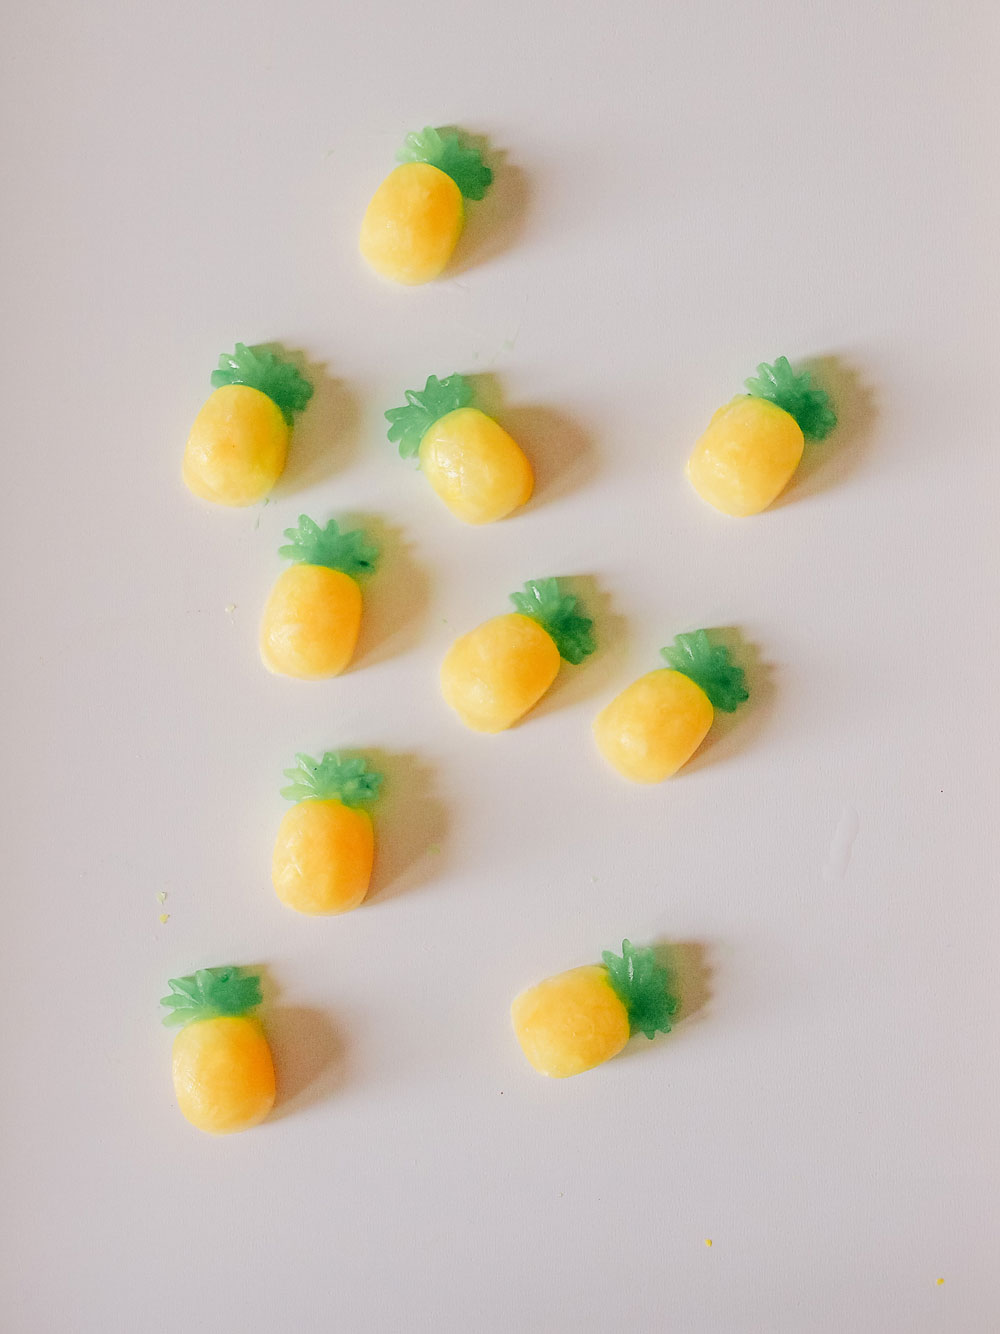 How to Make Pineapple Popsicle Bites - tingandthings.com